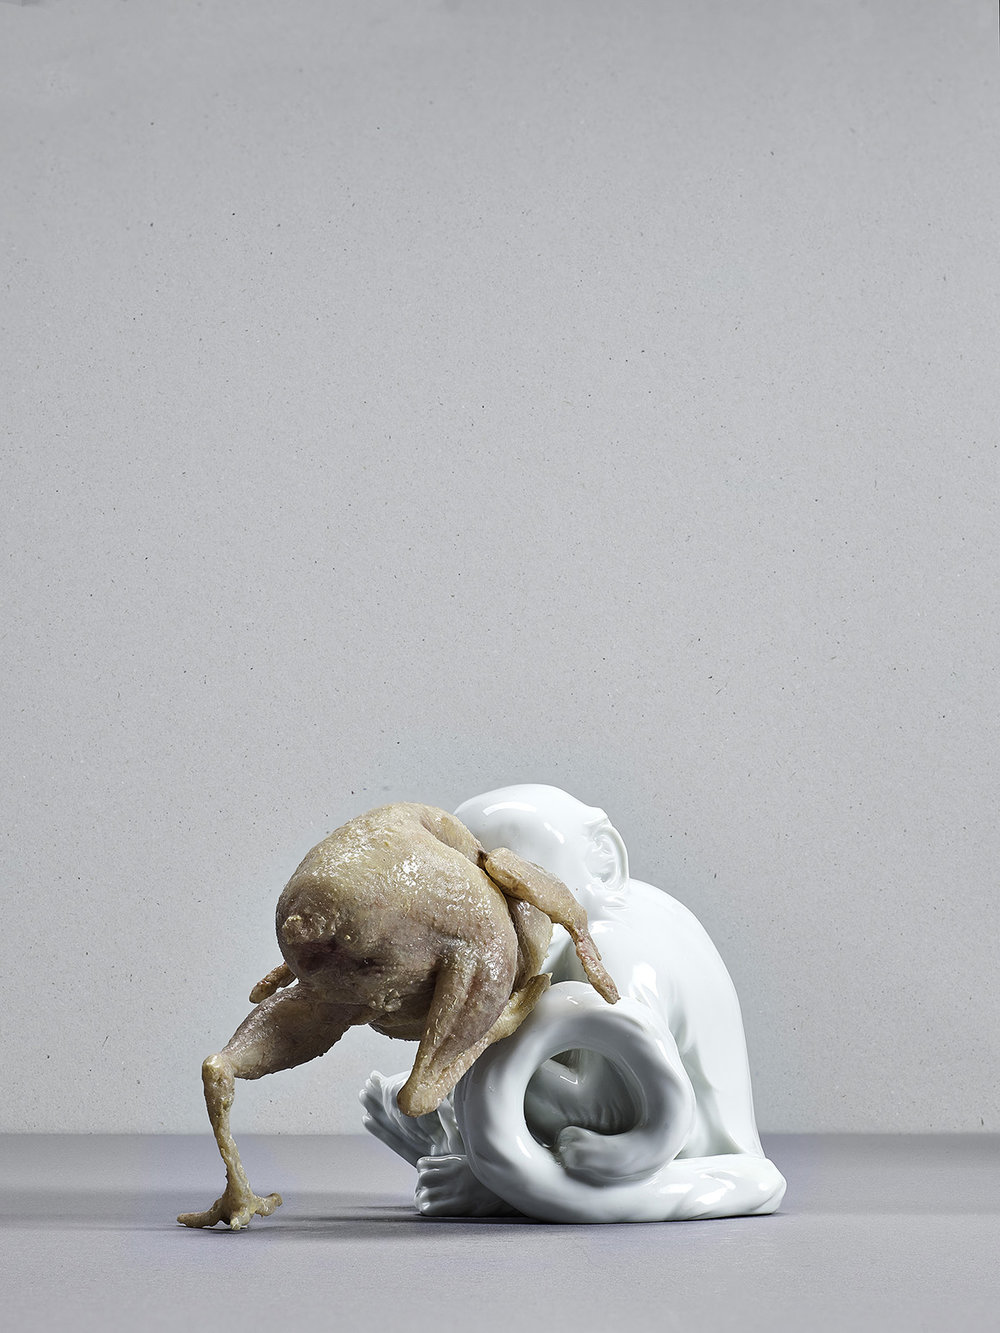 untitled (monkey), Augarten porcellain, silicone, silicone paint, 15 x 10 x 10 cm, 2015